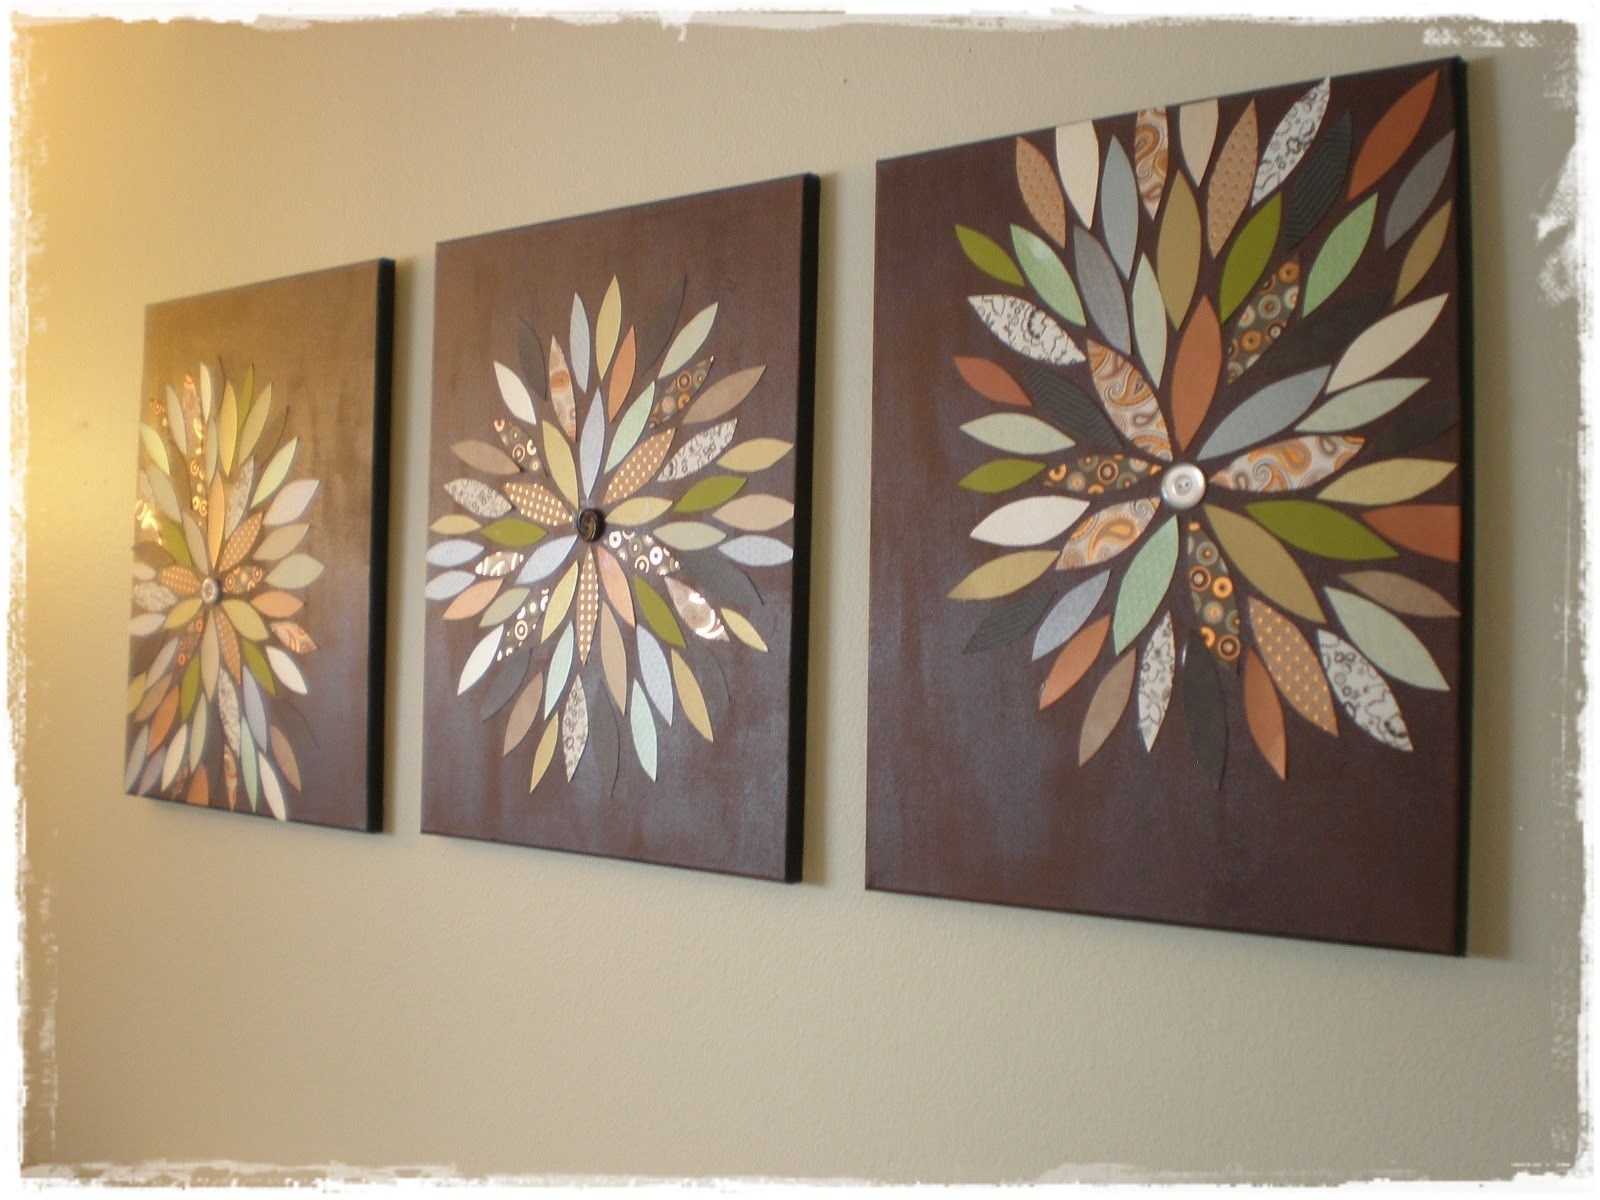 Diy Wall Art Craft Ideas – Home Art Decor | #51696 For Latest Diy Wall Art Projects (View 9 of 20)